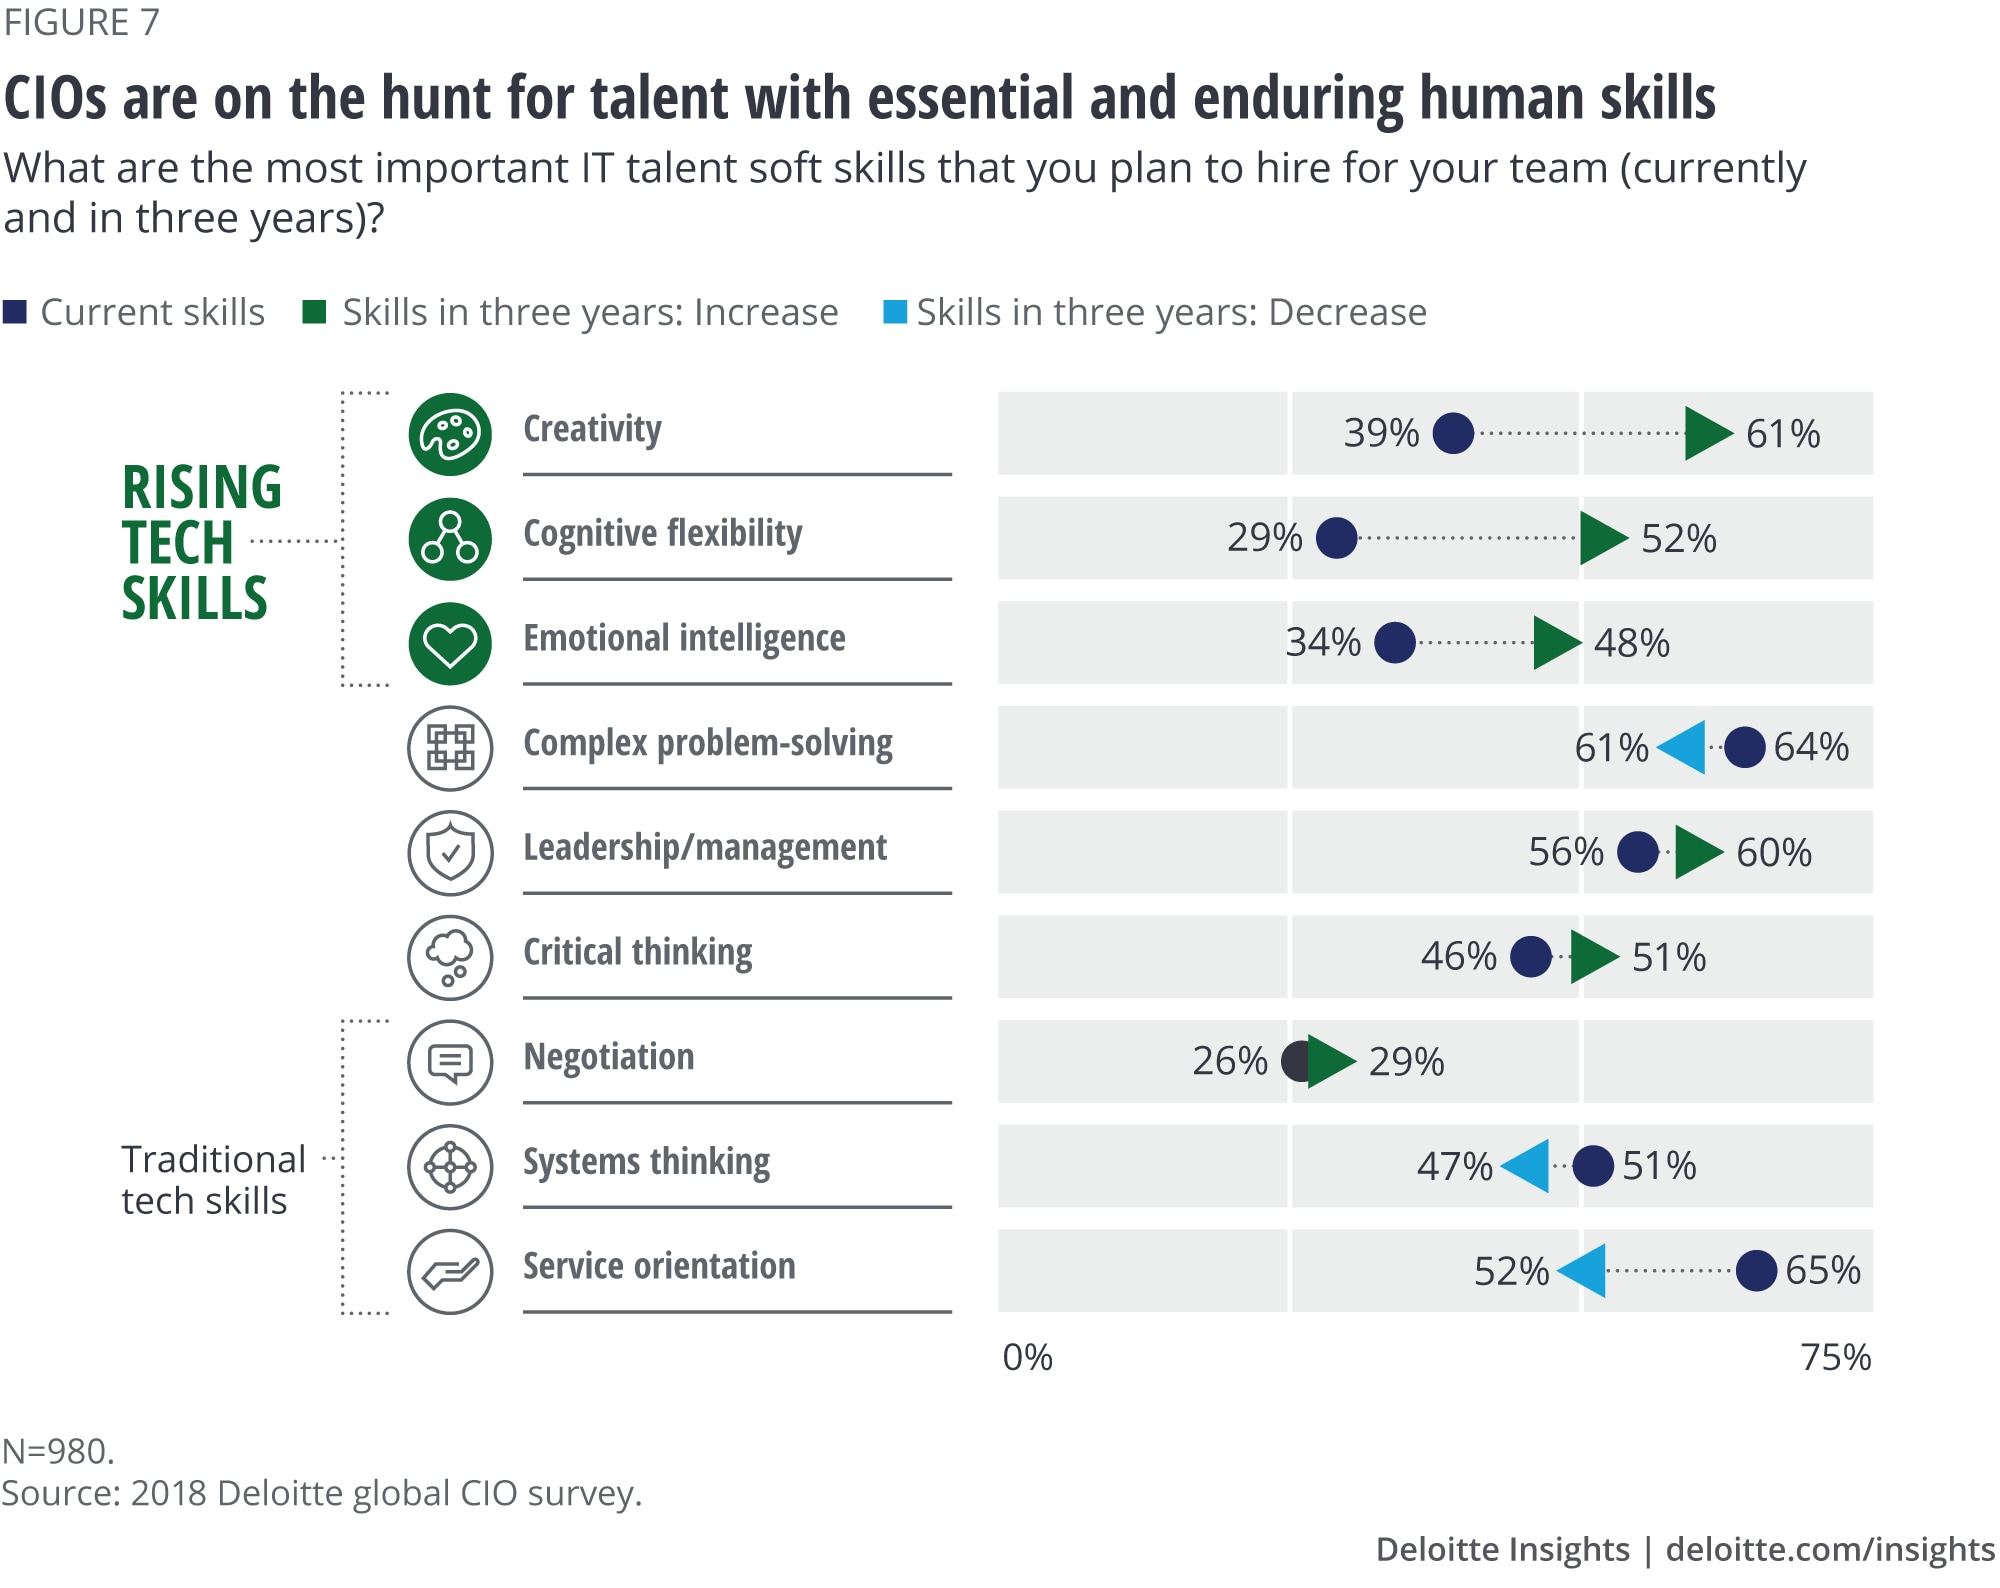 CIOs are on the hunt for talent with essential and enduring human skills